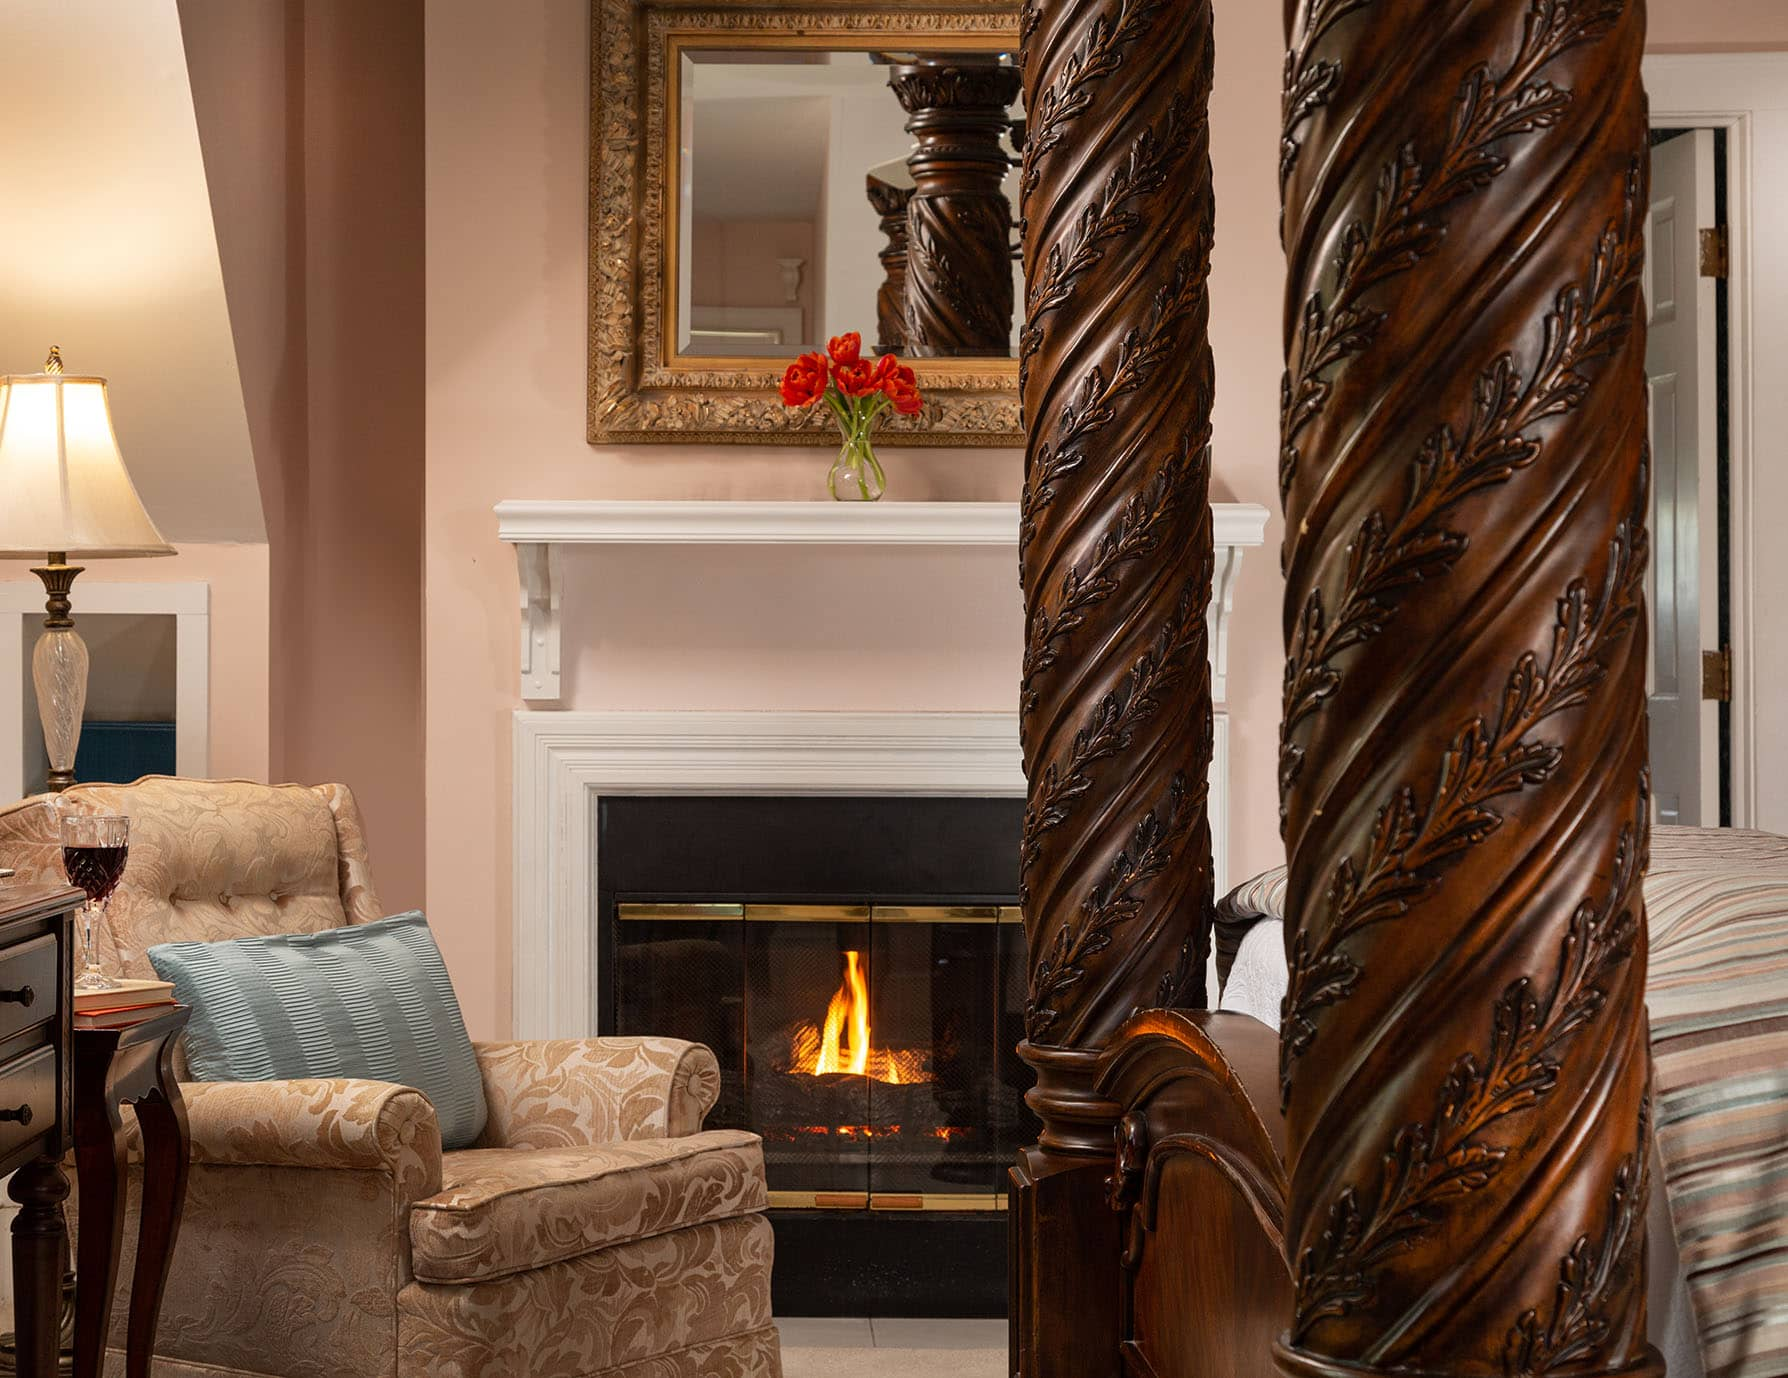 Cozy Fireplace and Seating Area at Our Roanoke Island Lodging